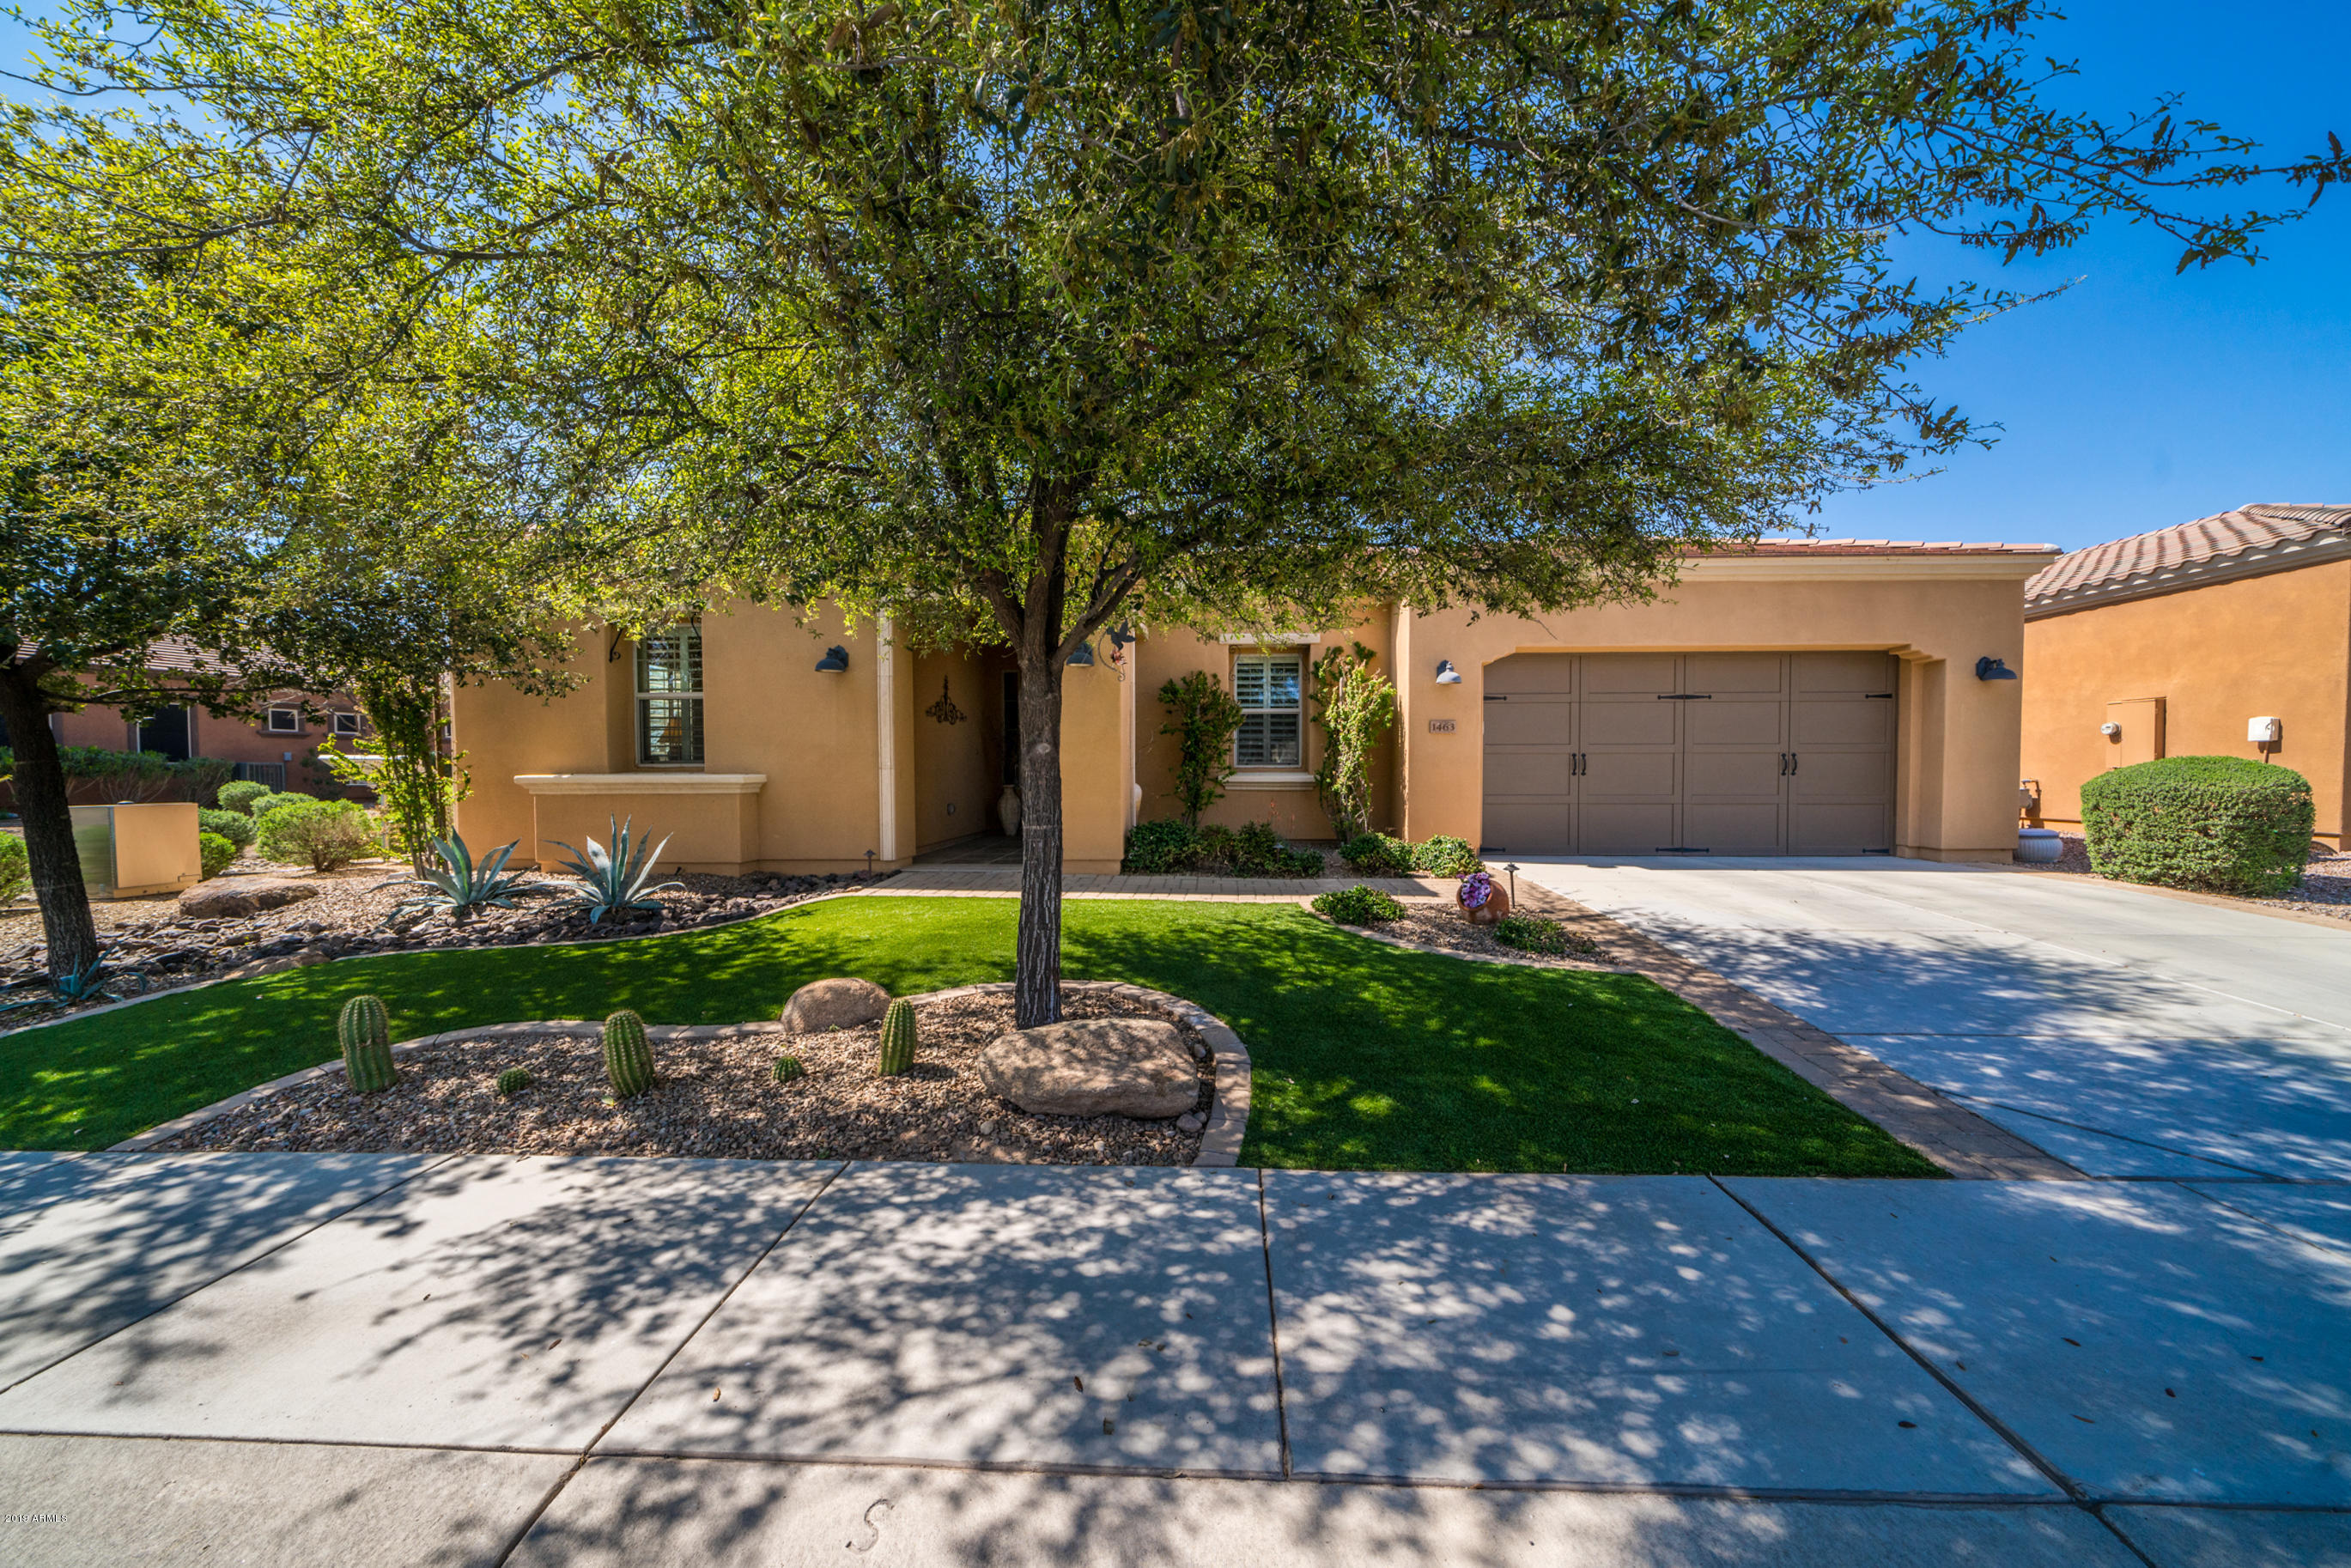 Photo of 1463 E SWEET CITRUS Drive, San Tan Valley, AZ 85140